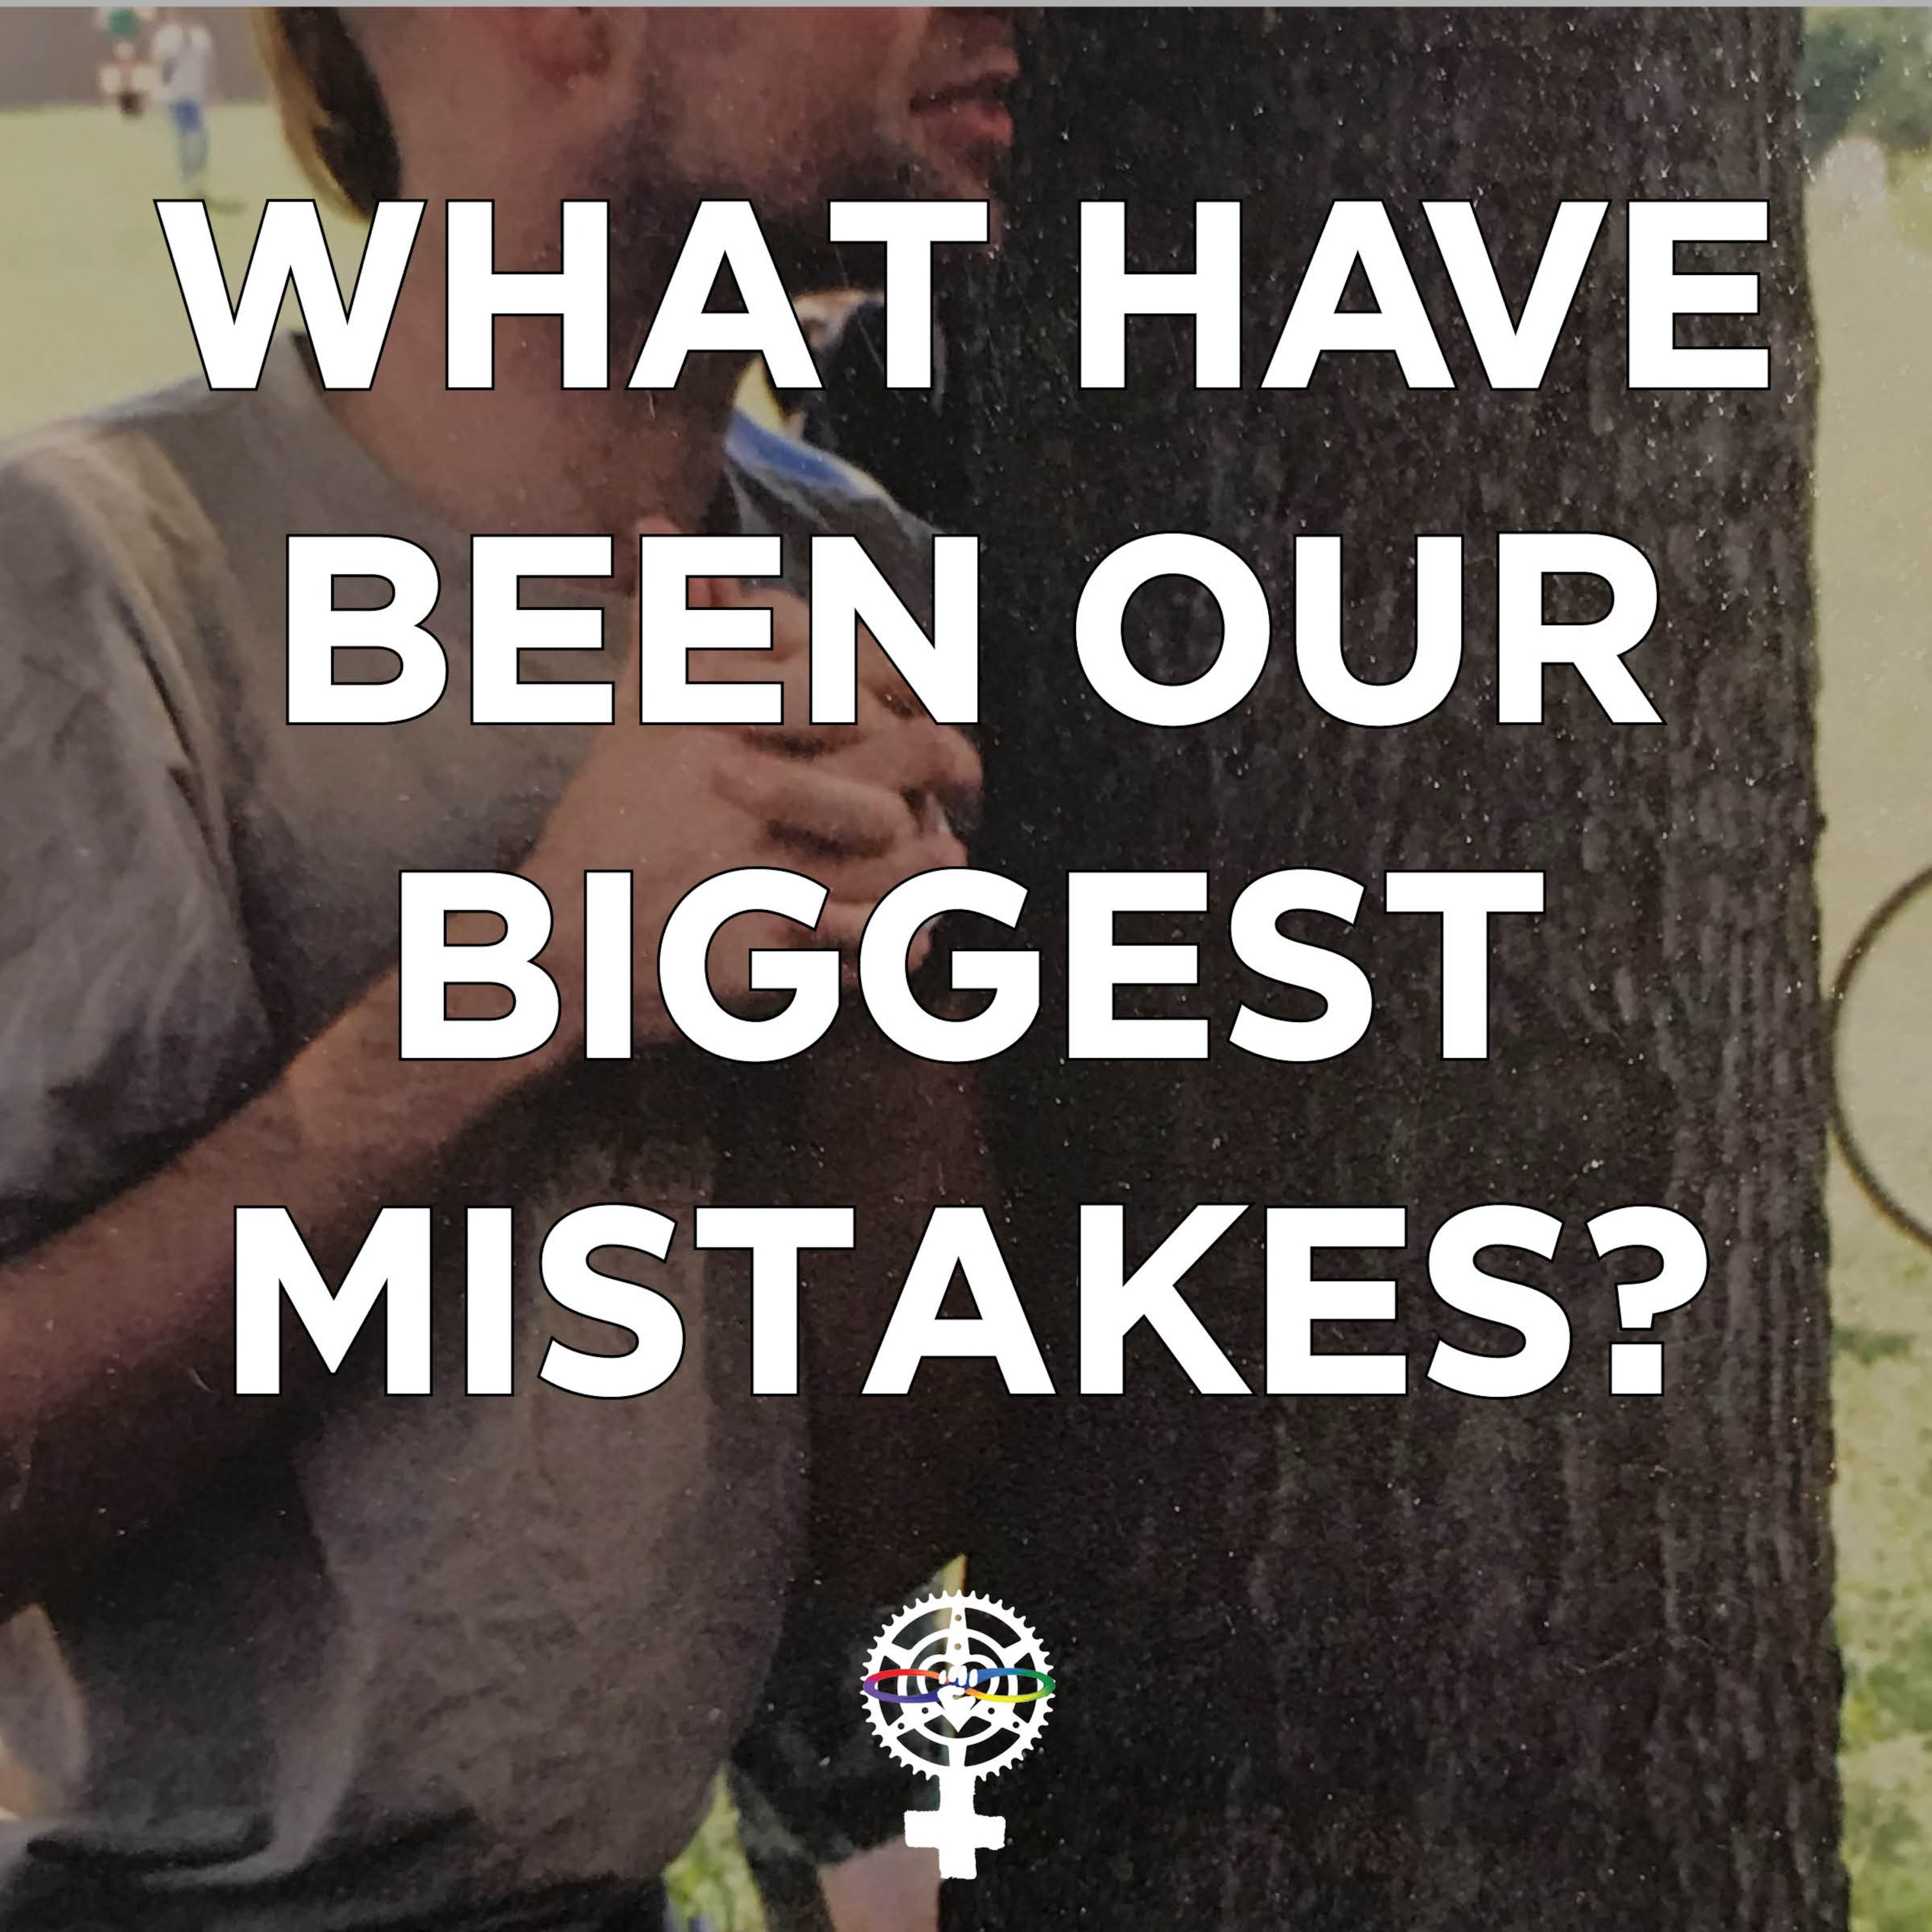 What Have Been Our Biggest Mistakes?